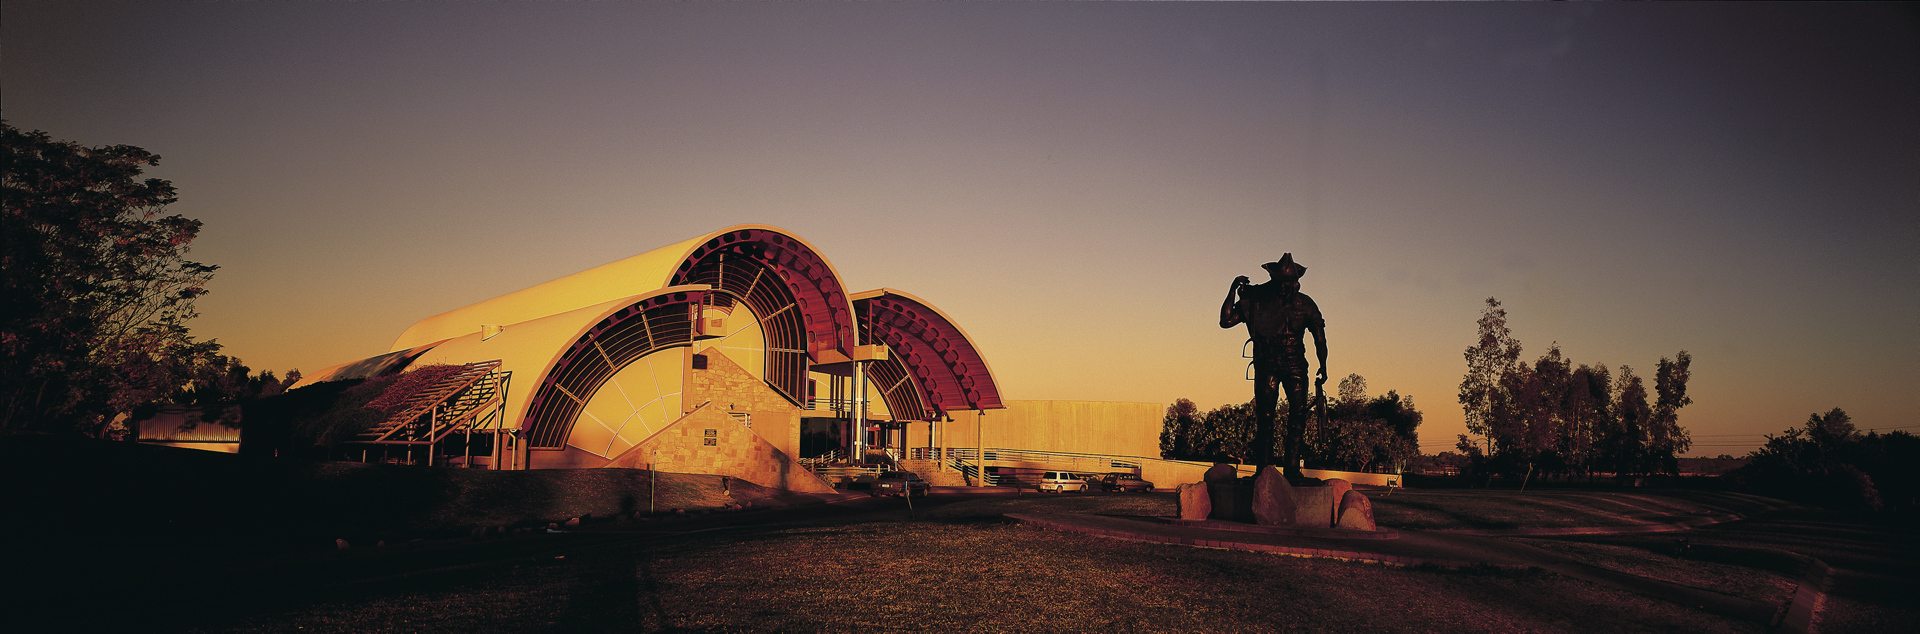 Stockmans Hall of Fame ©Tourism and Events Queensland